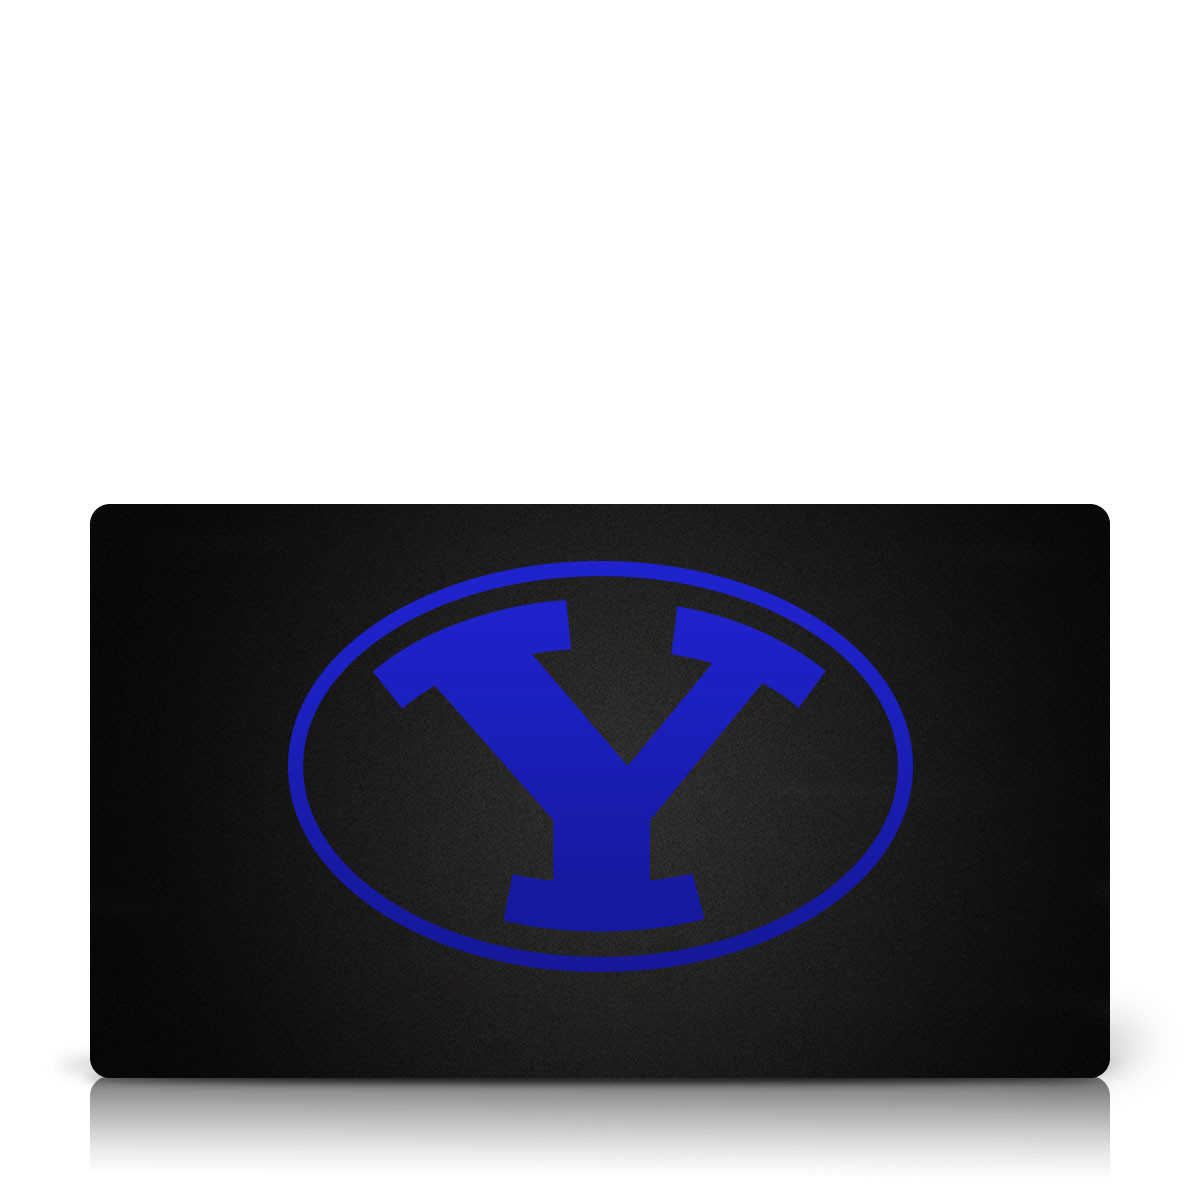 Byu Store Gift Cards